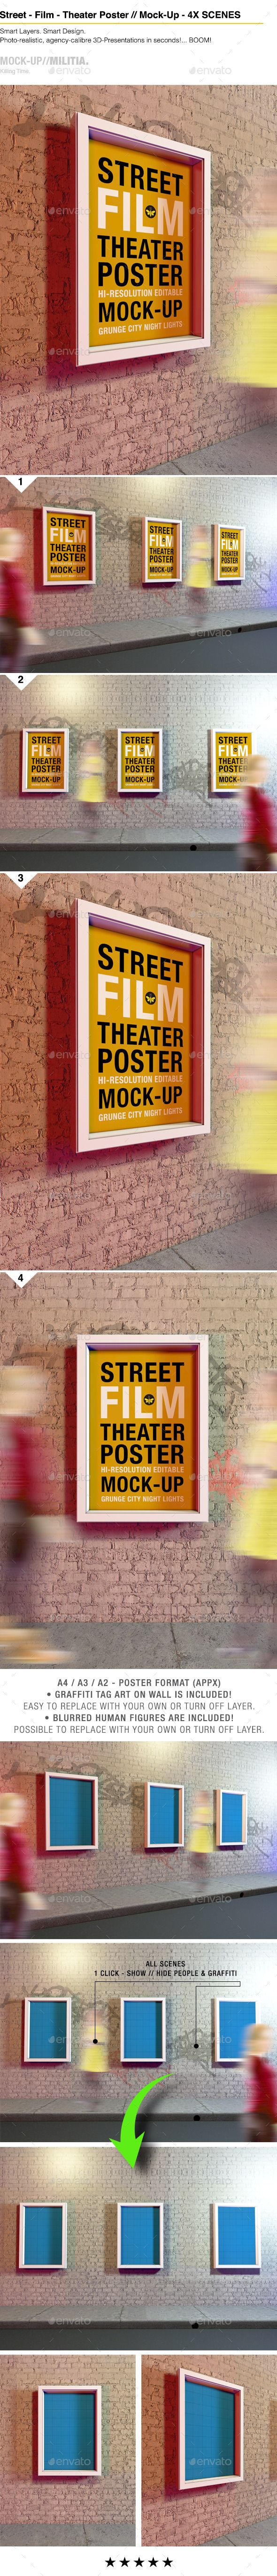 Theatre Theater Film Outdoor Poster Mock Up Poster Mockup Theatre Poster Business Card Mock Up